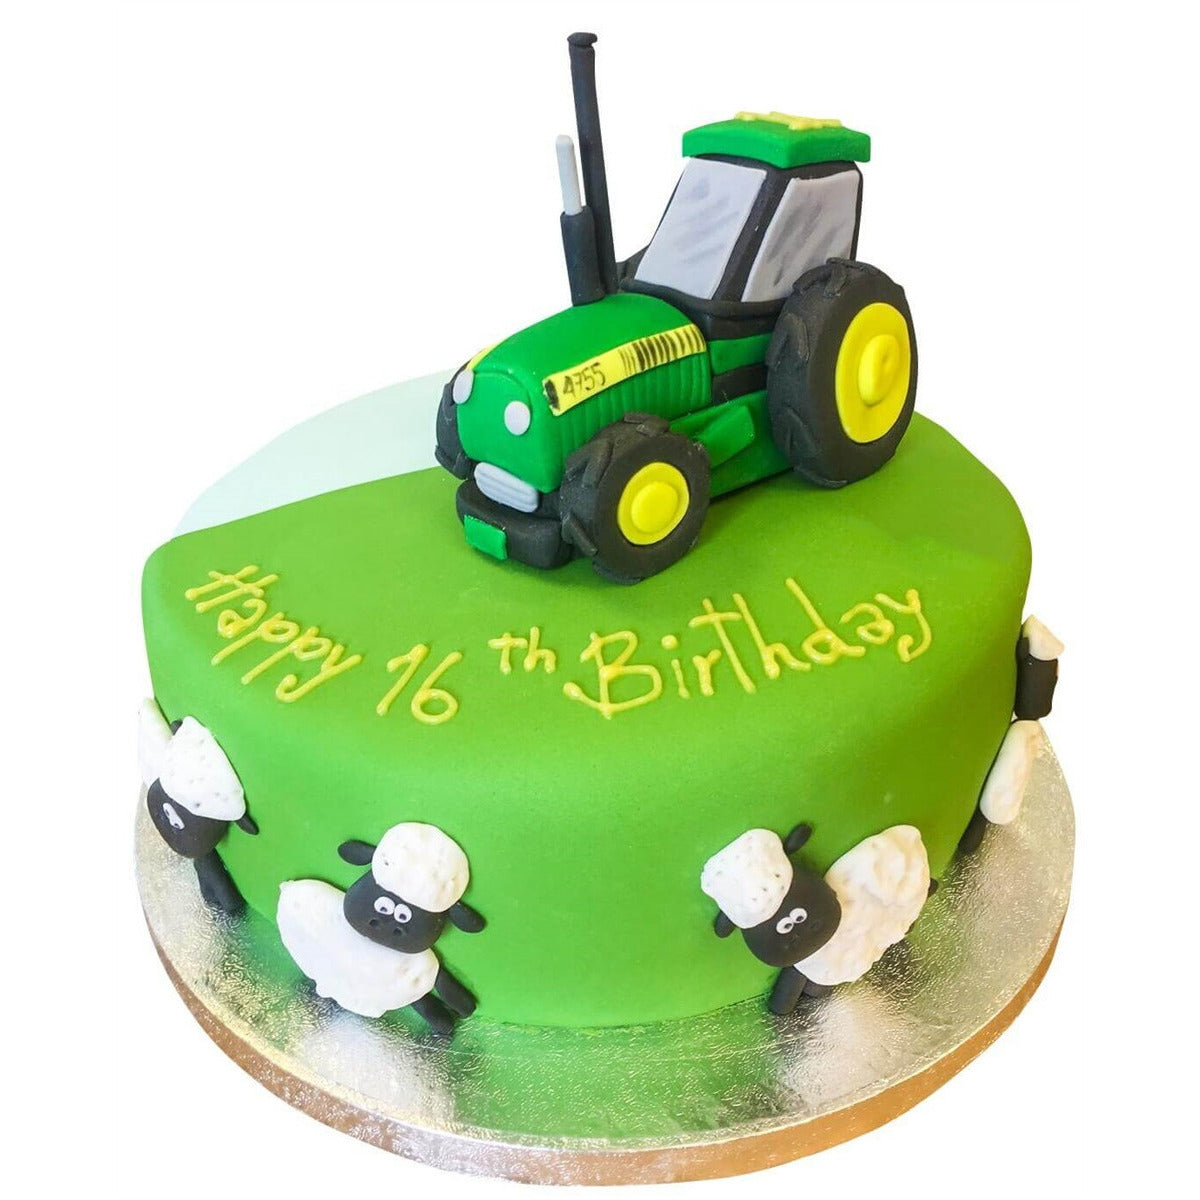 Tractor Cake 10995 Buy Online Free UK Delivery New Cakes